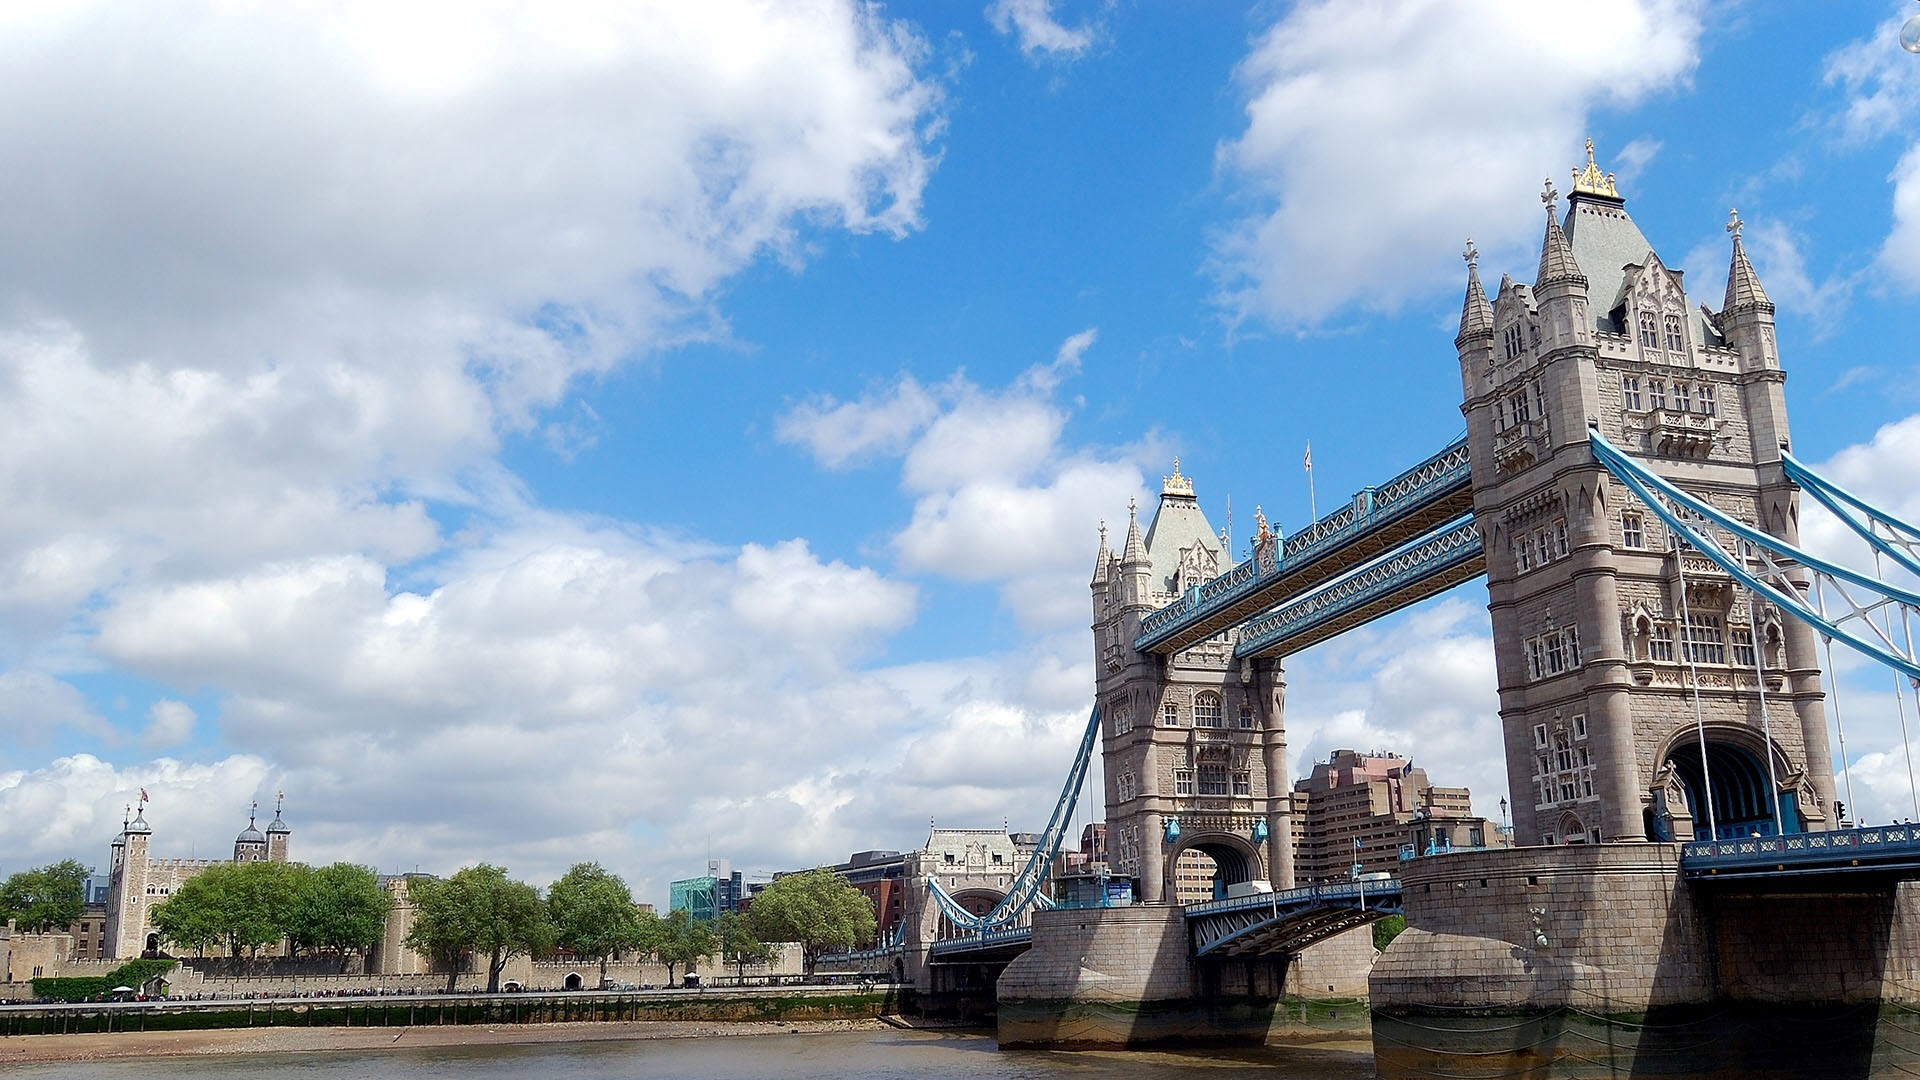 2560x1440 Wallpaper Cars Tower Bridge London Hd Wallpapers Hd Wallpapers Id 8540